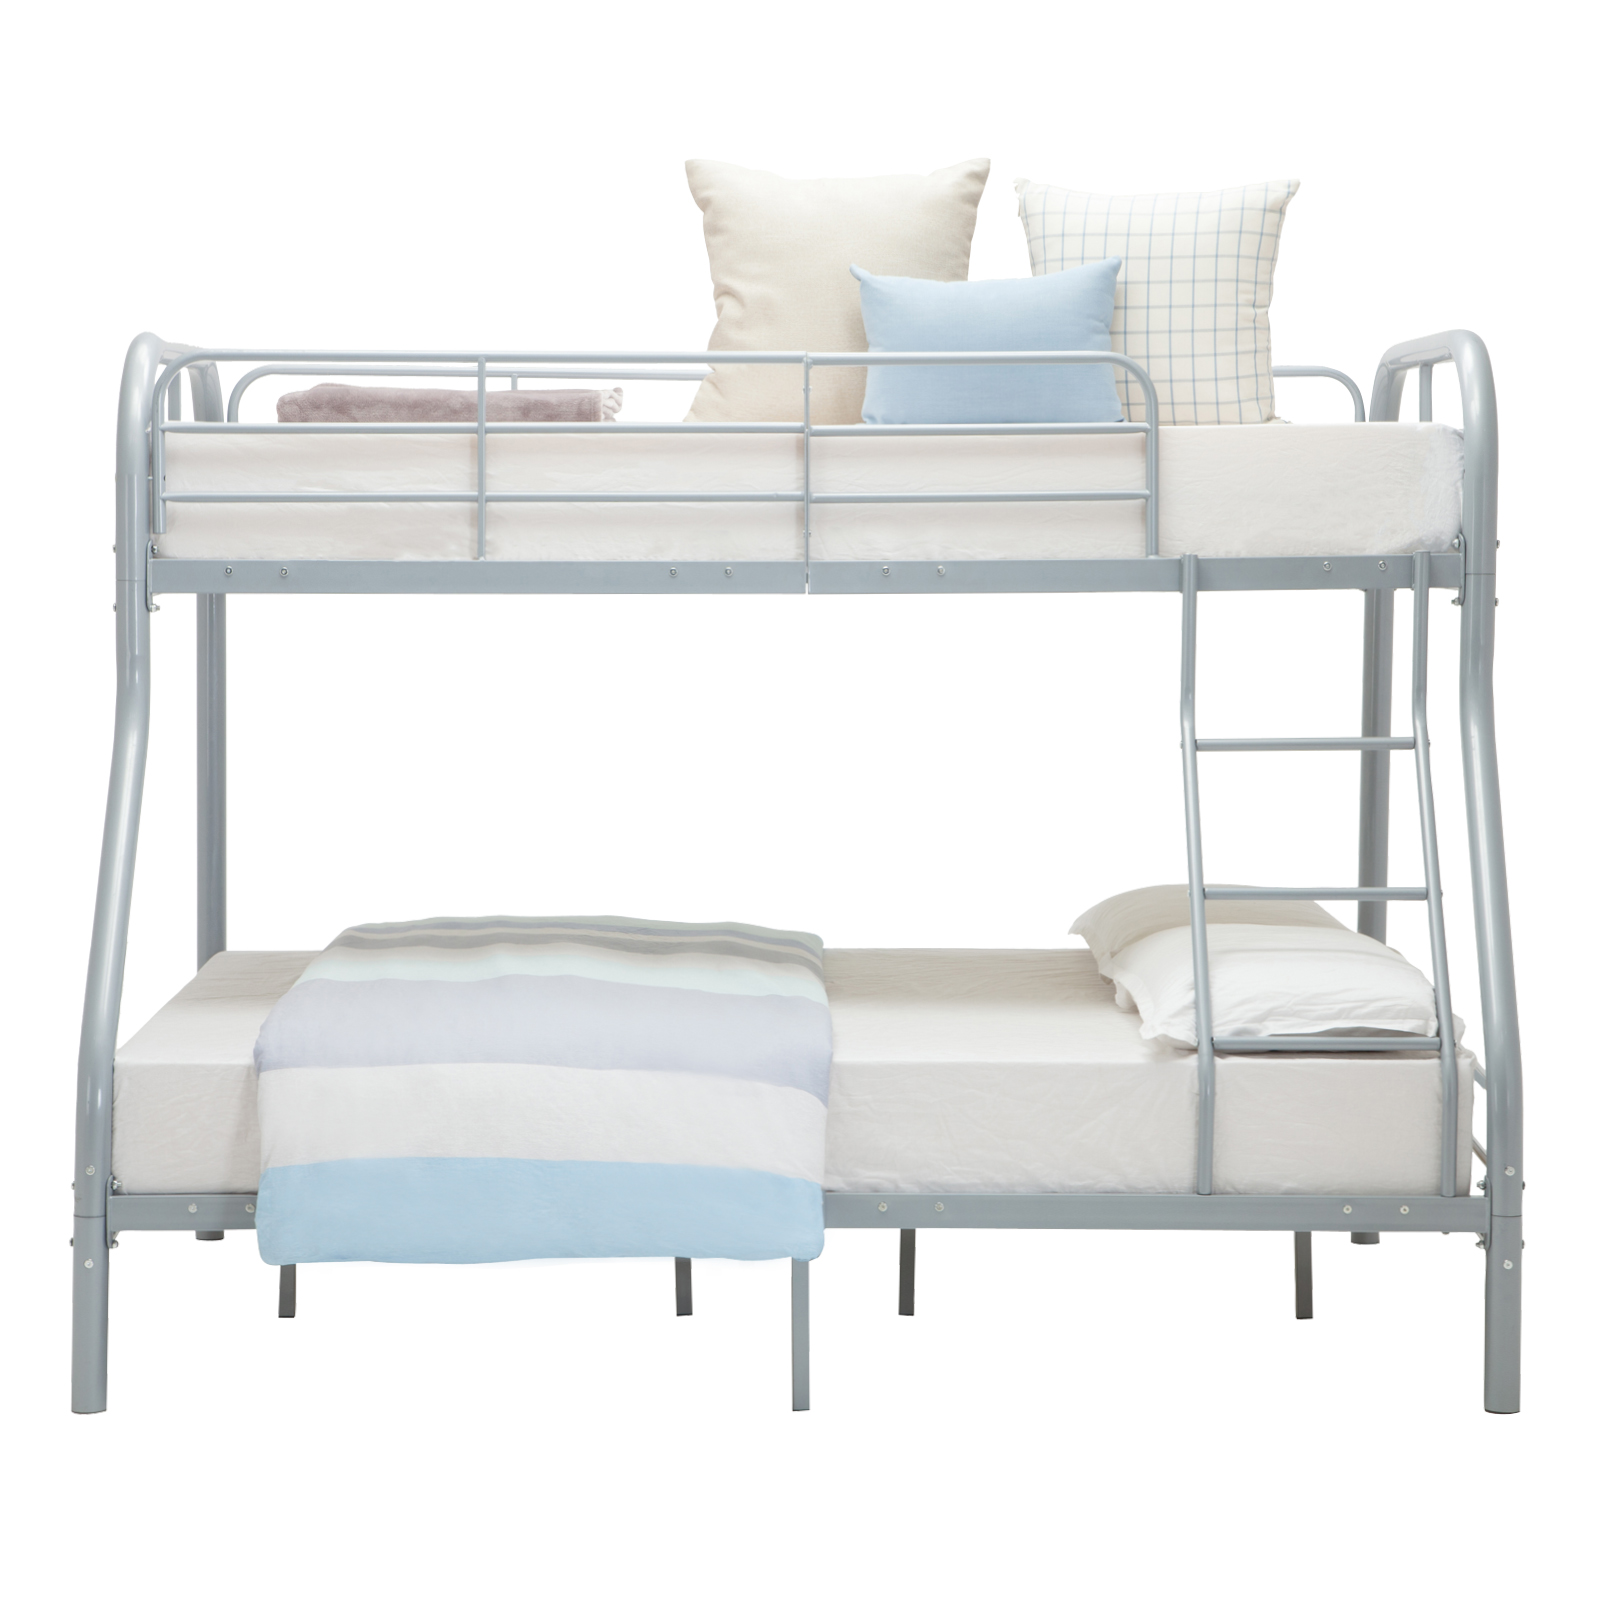 Metal Twin Over Full Beds Bunk Teens Kids Dorm Bedroom Sliver Furniture W Ladder Ebay